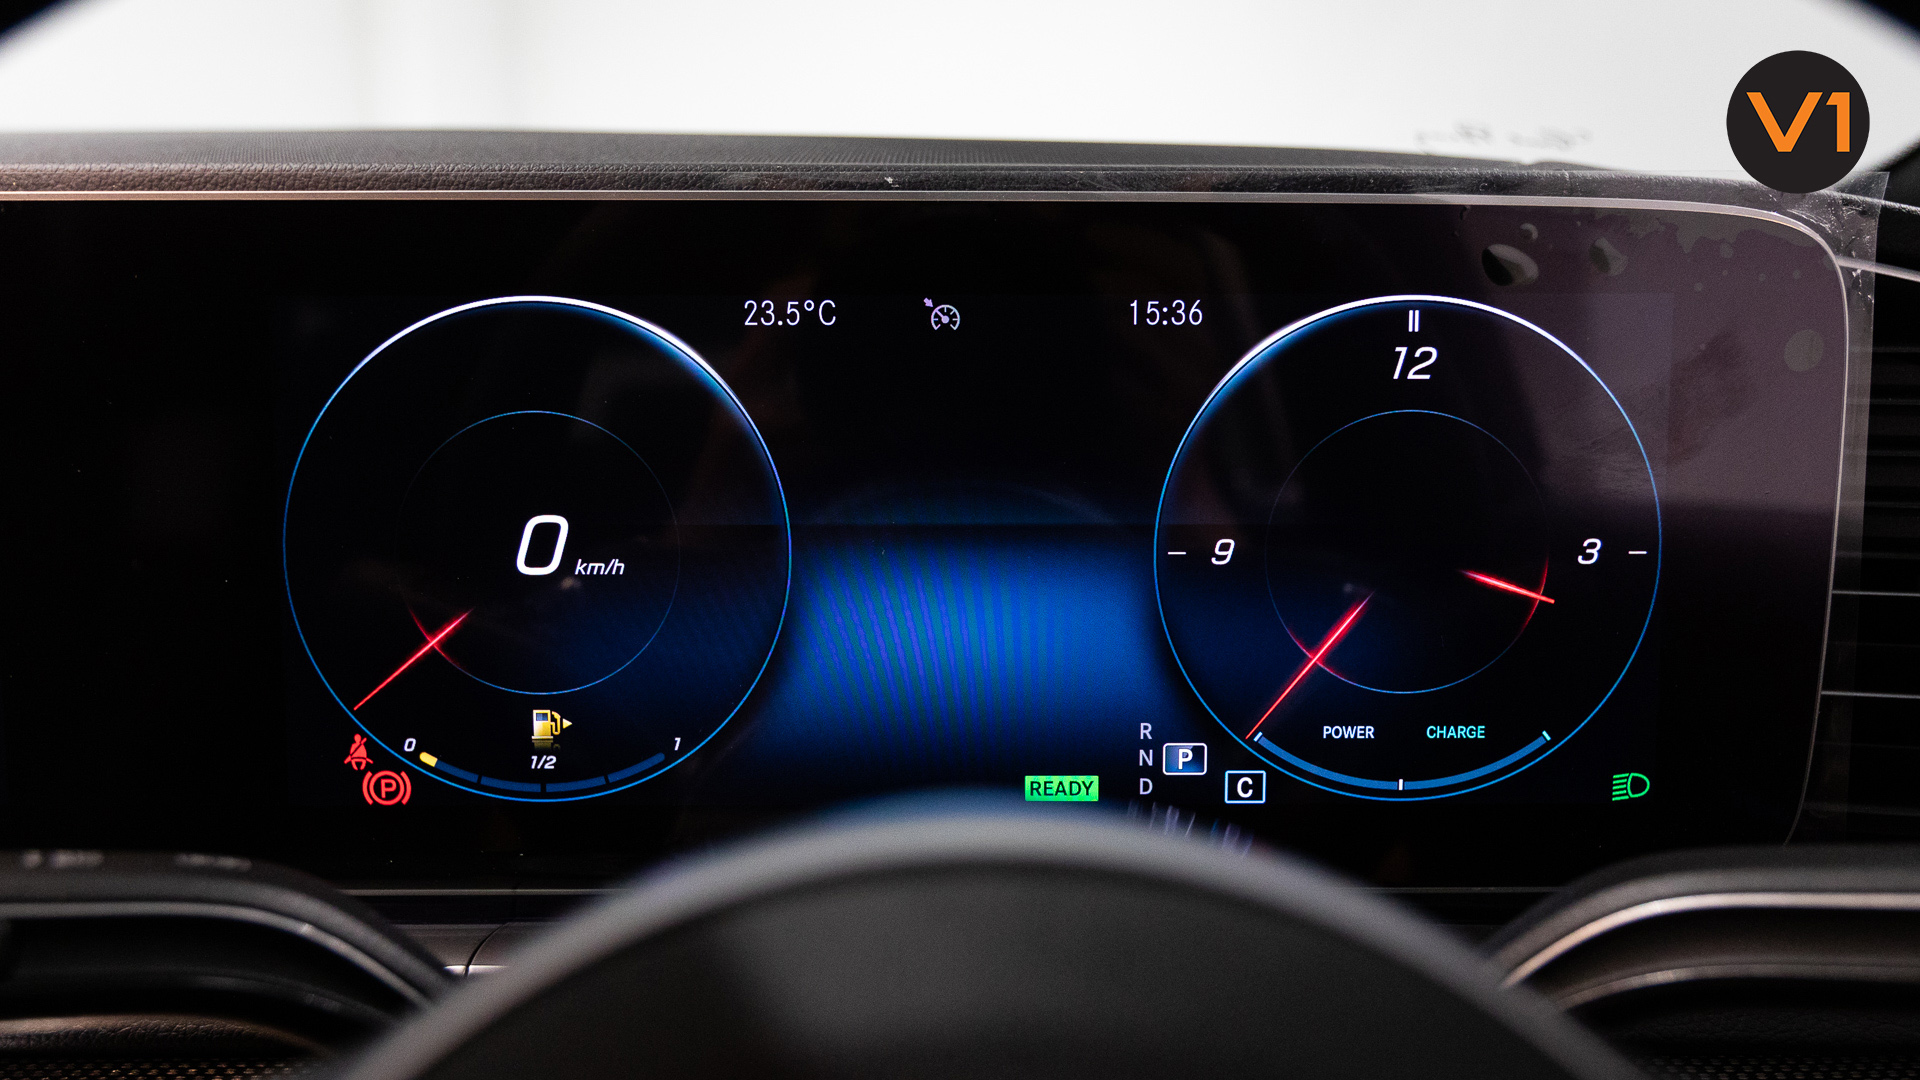 MERCEDES-BENZ GLE450 AMG 4MATIC LUXURY - Instrument Cluster